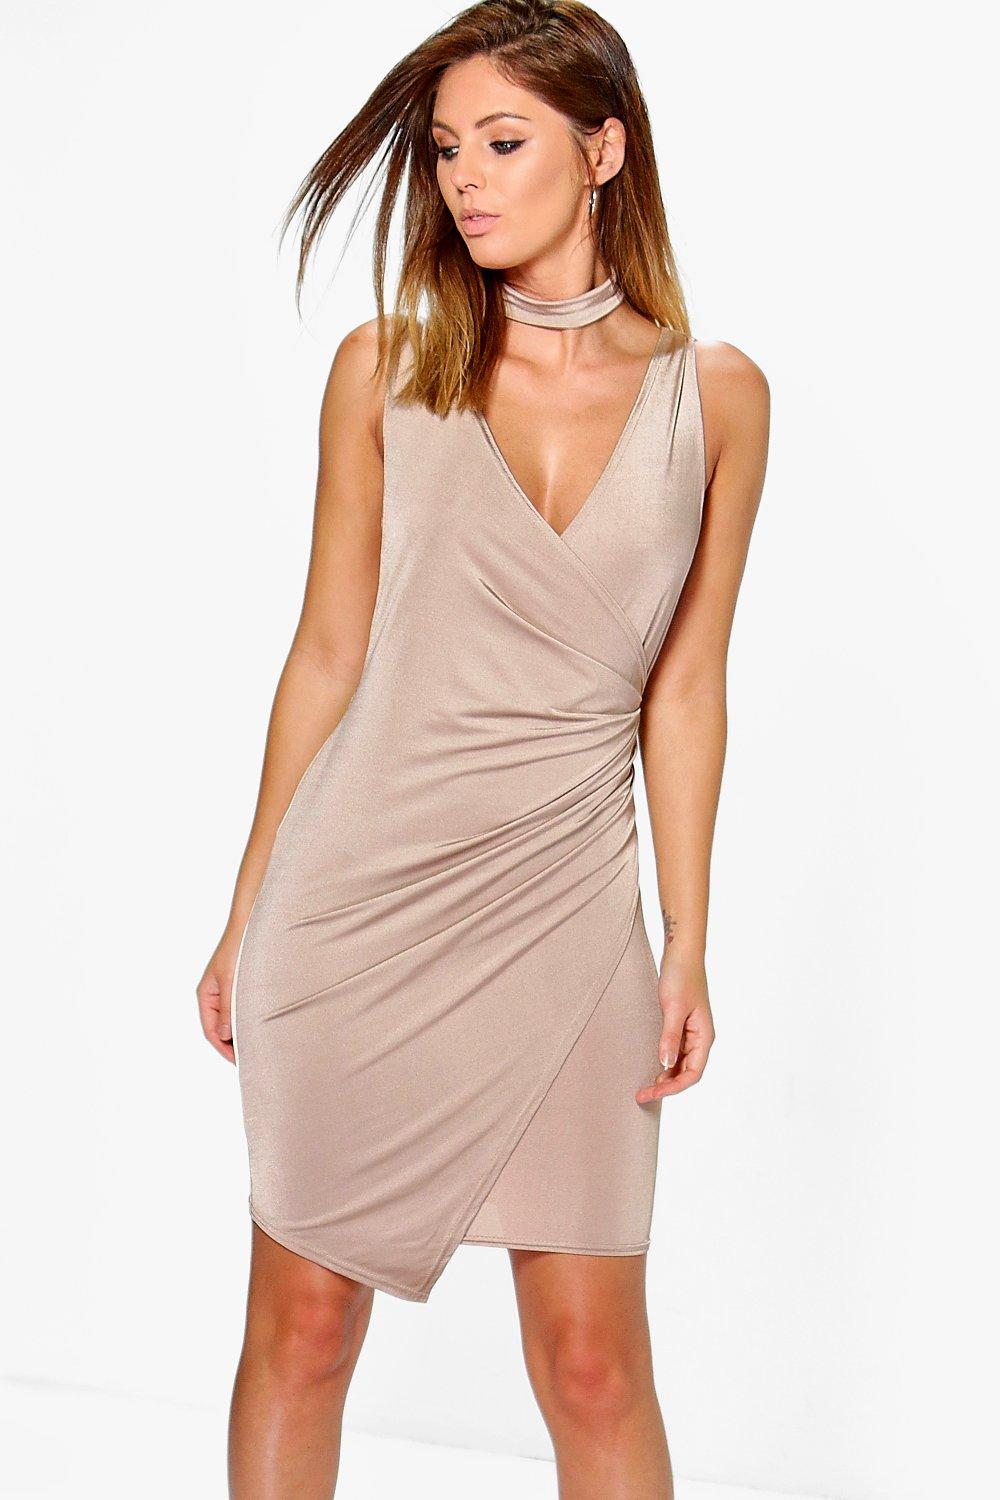 Adria Drape Slinky Tie Neck Detail Bodycon Dress